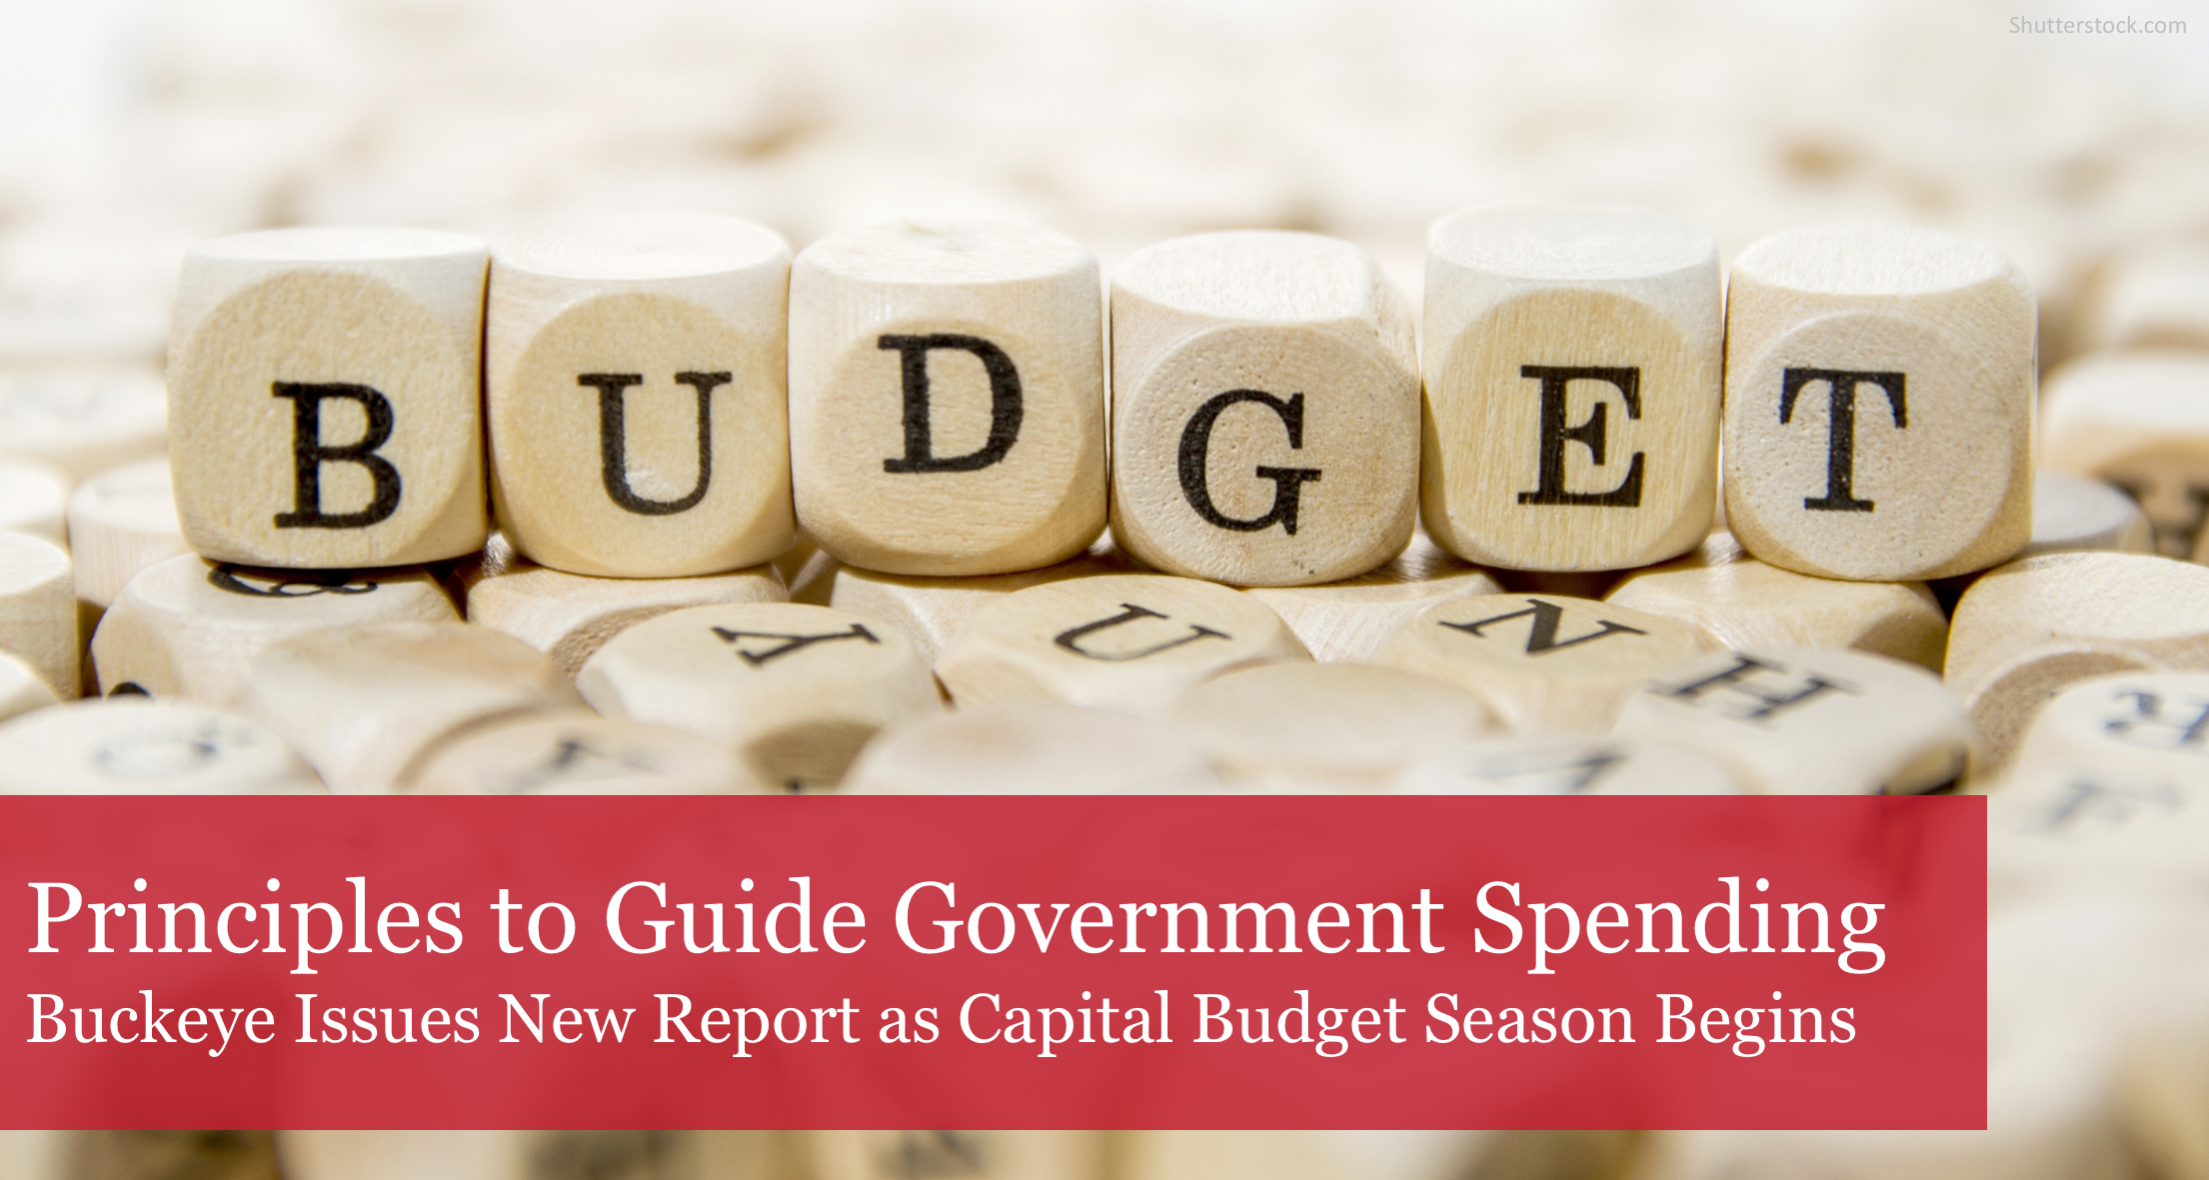 As Capital Budget Season Begins, Buckeye's Newest Report Outlines Principles to Guide Government Spending